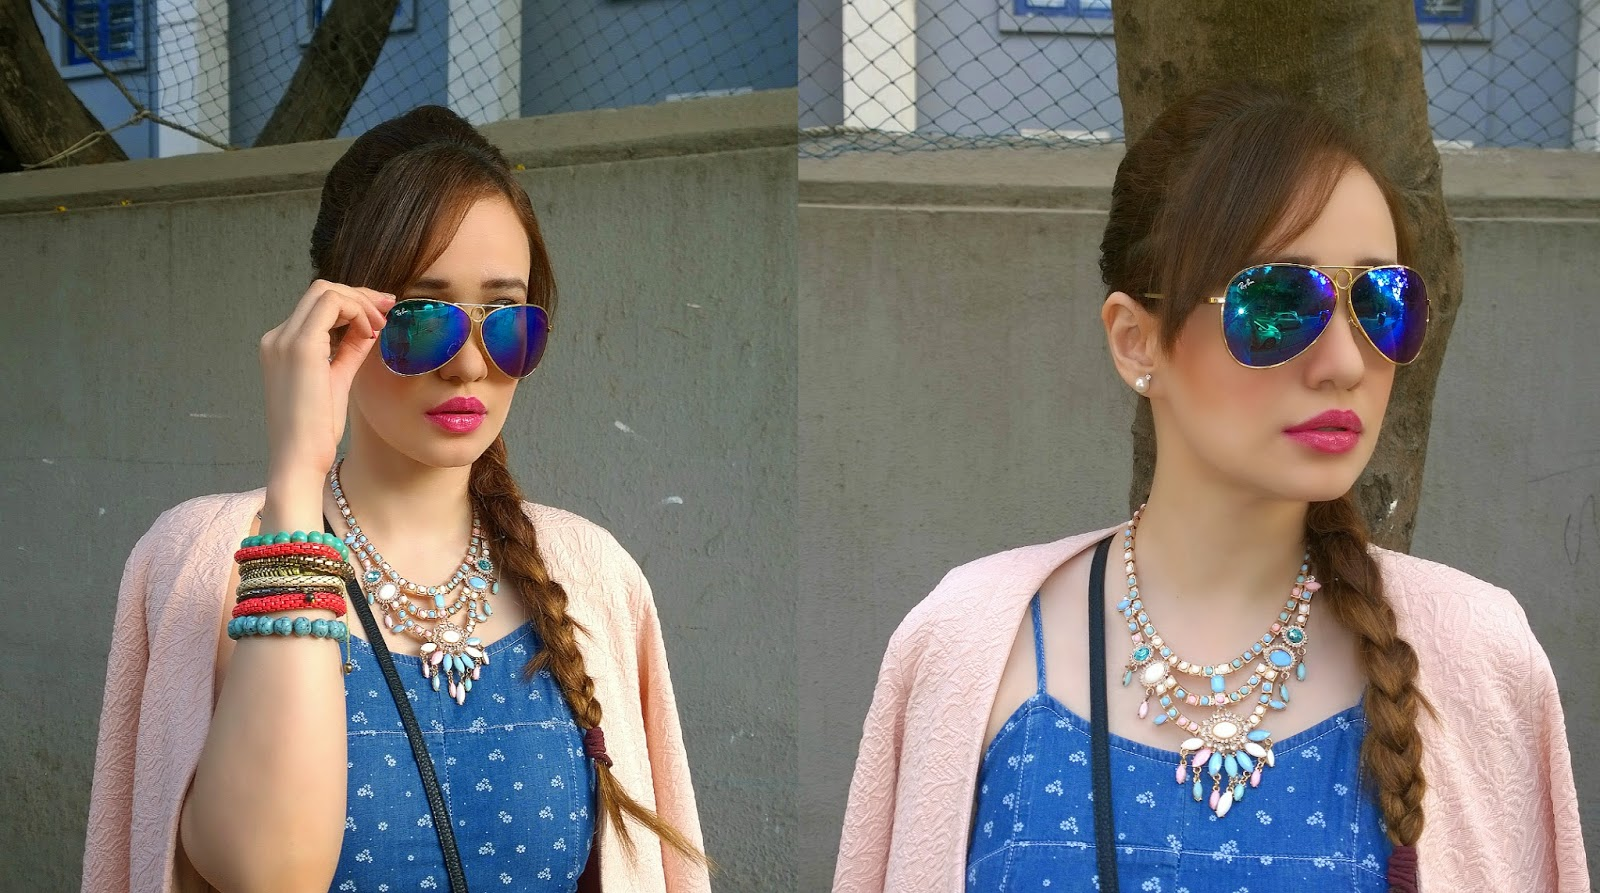 Ray-Ban blue mirrored sunglasses, pastel necklace, side briad